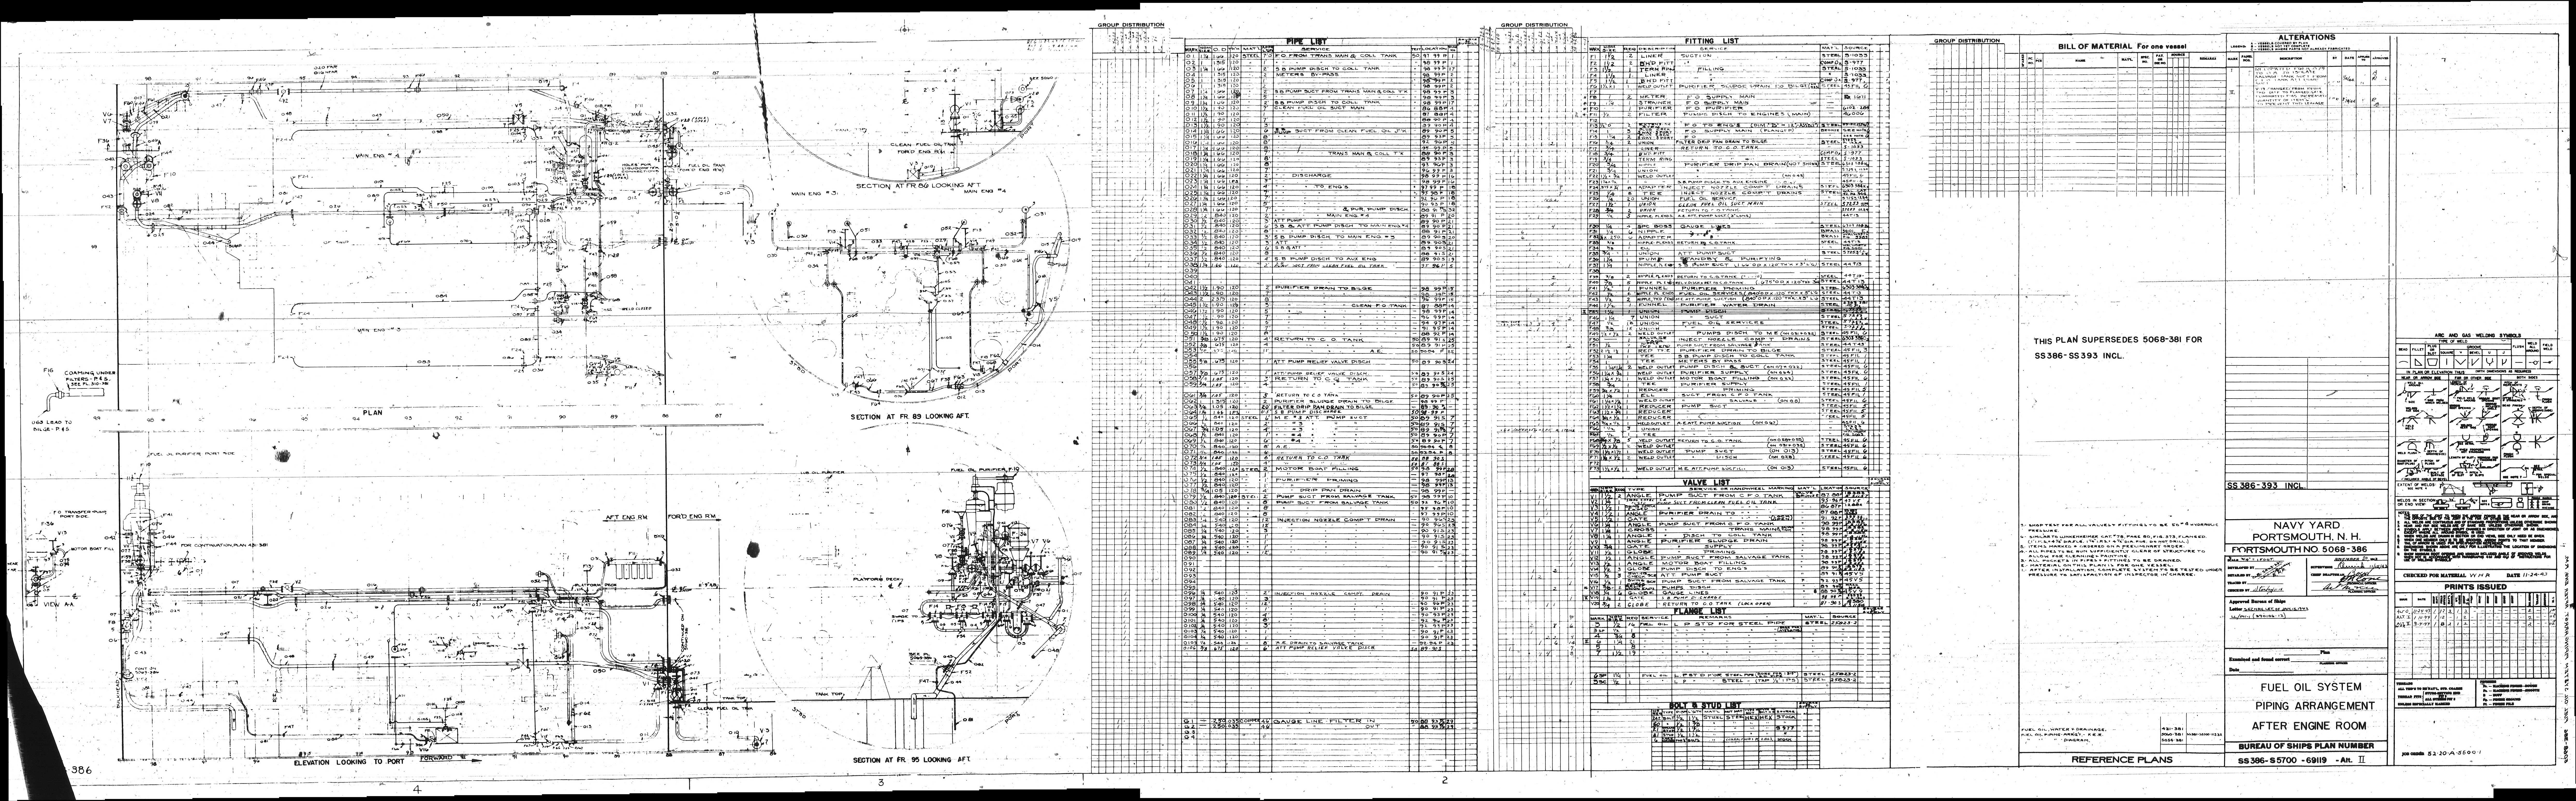 uss pampanito drawings Piping Diagram Symbols fuel oil piping arrangement forward engine room_ss381 s5700 11532_5400 09 0252 jpg · sub ss385 fuel piping fer_ss385 s5500 1194384_32429 11 0325 jpg Typical Hot Water Piping Schematic